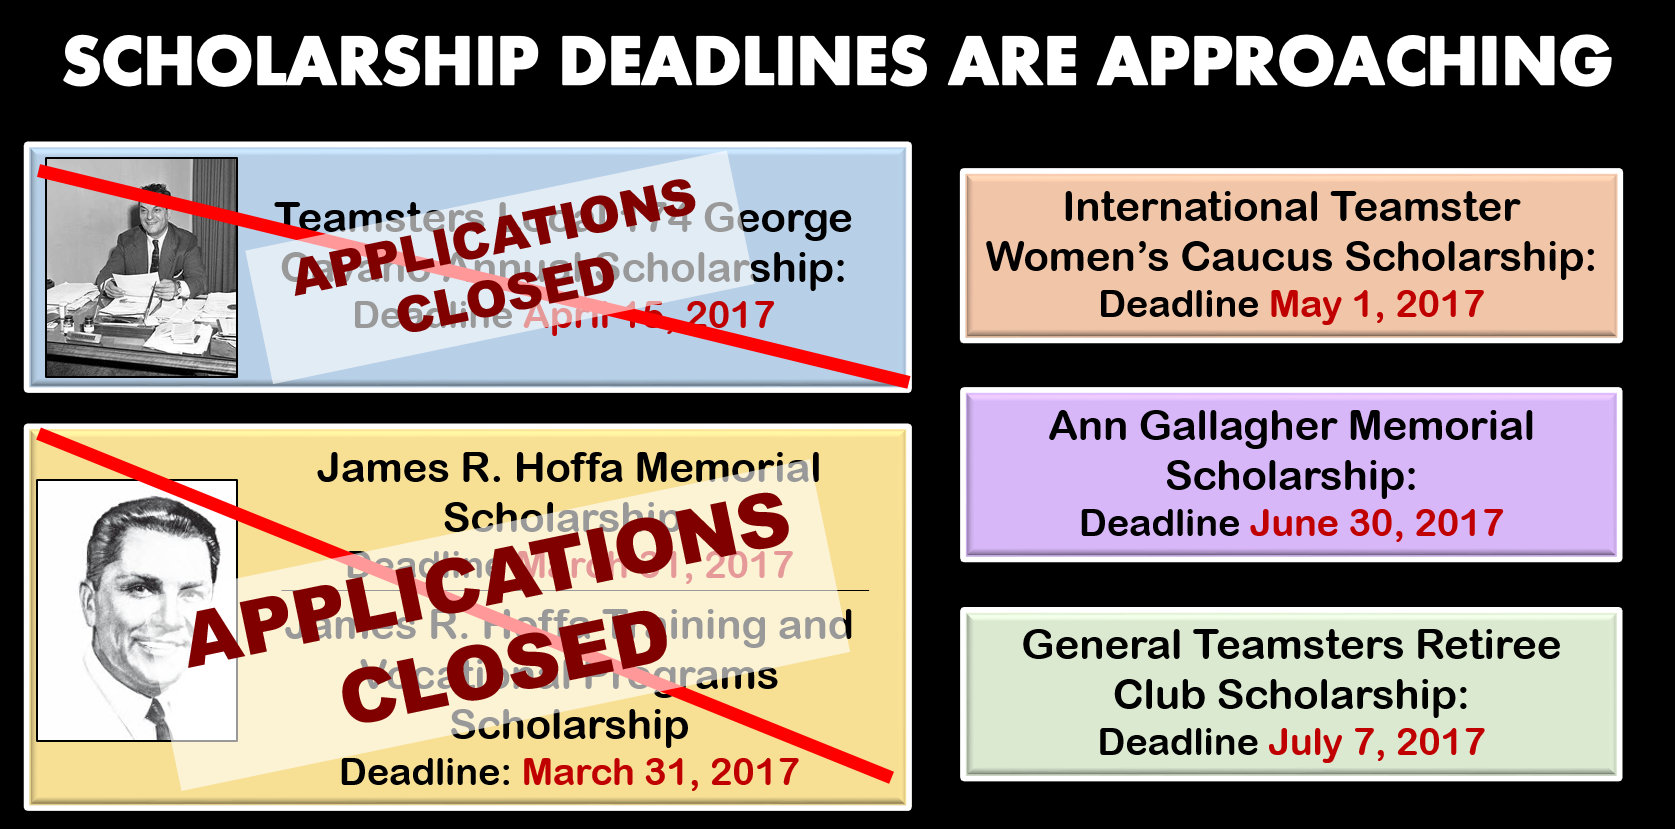 2017-3-21-Scholarship-deadlines-1